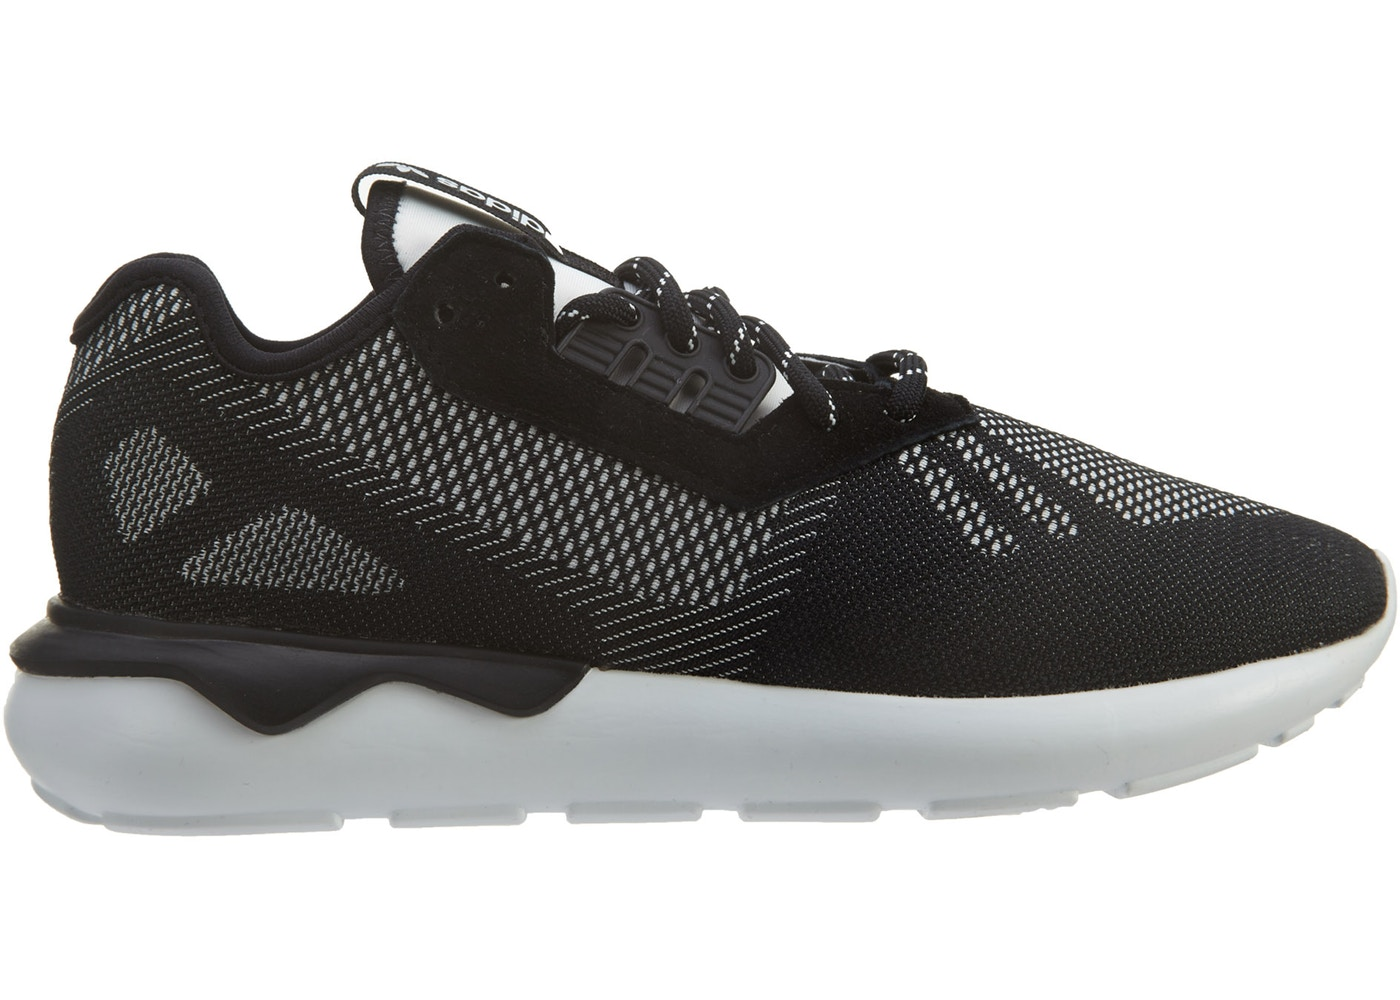 new concept 6913f 109a9 adidas Tubular Runner Weave Black/Black/White